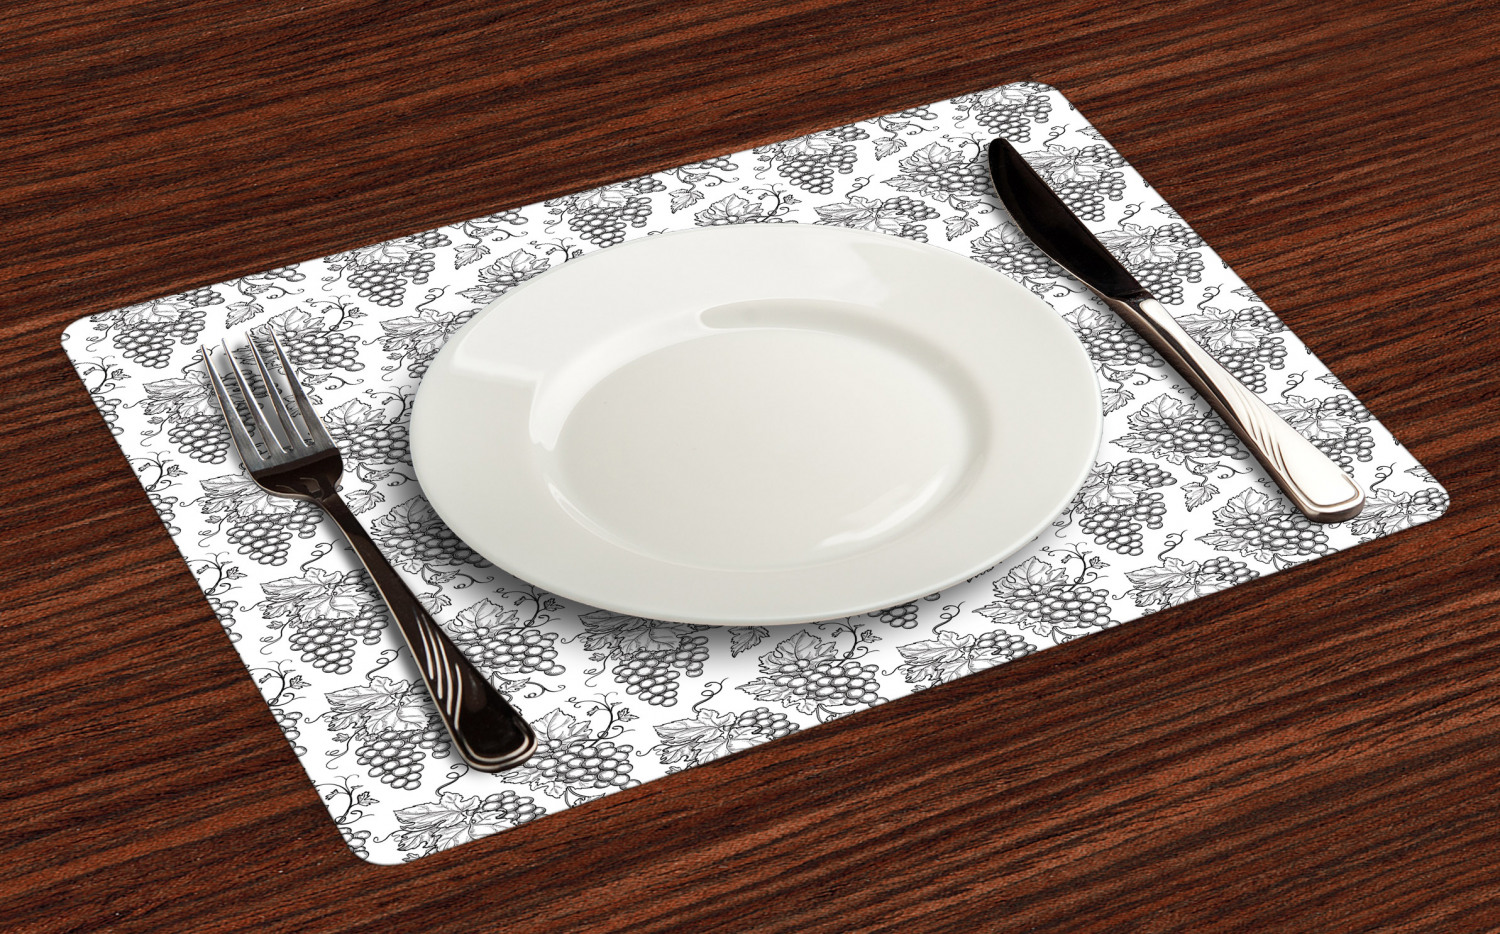 Ambesonne-Fabric-Place-Mats-Set-of-4-Placemats-for-Dining-Room-and-Kitchen-Table thumbnail 177